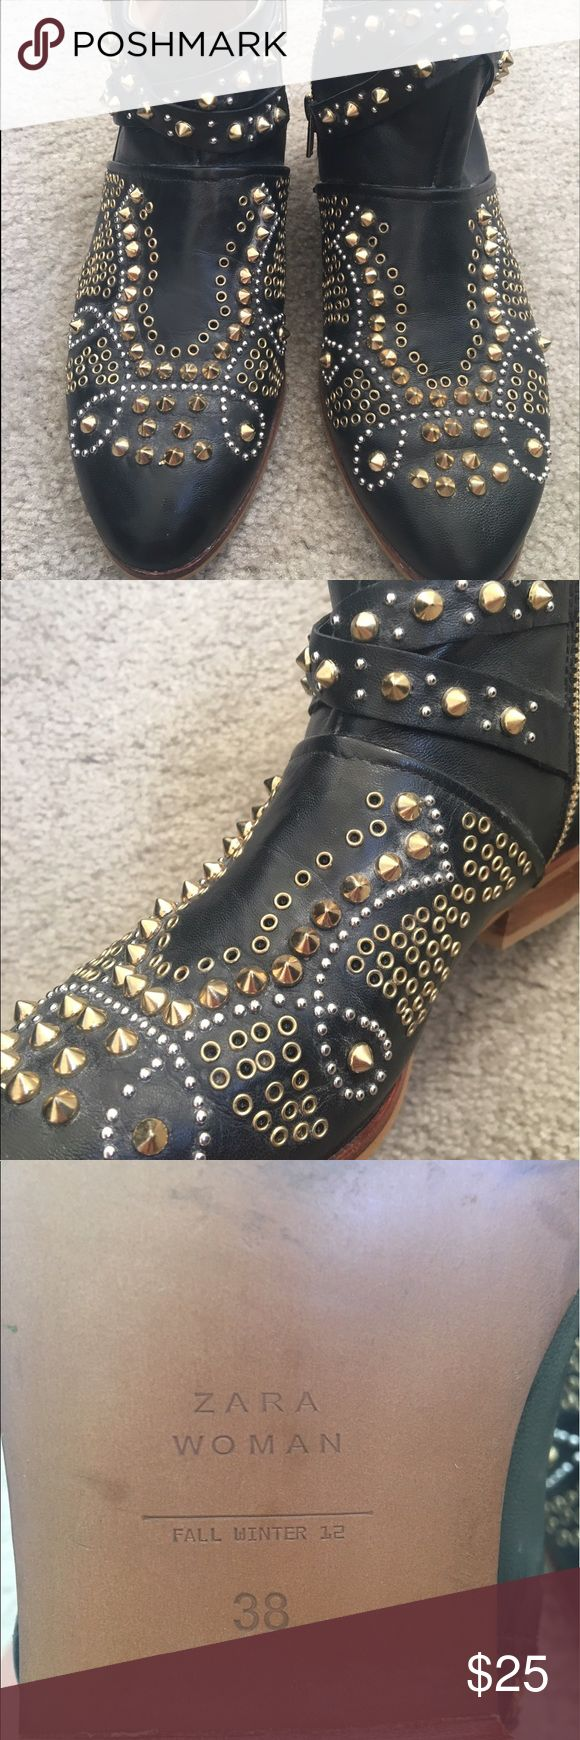 Zara studded ankle boots Black studded ankle boots from Zara. Studs and grommets in silver and gold hardware. Looks great with jeans, dresses or leggings. Worn a few times but still in great condition. Zara Shoes Ankle Boots & Booties